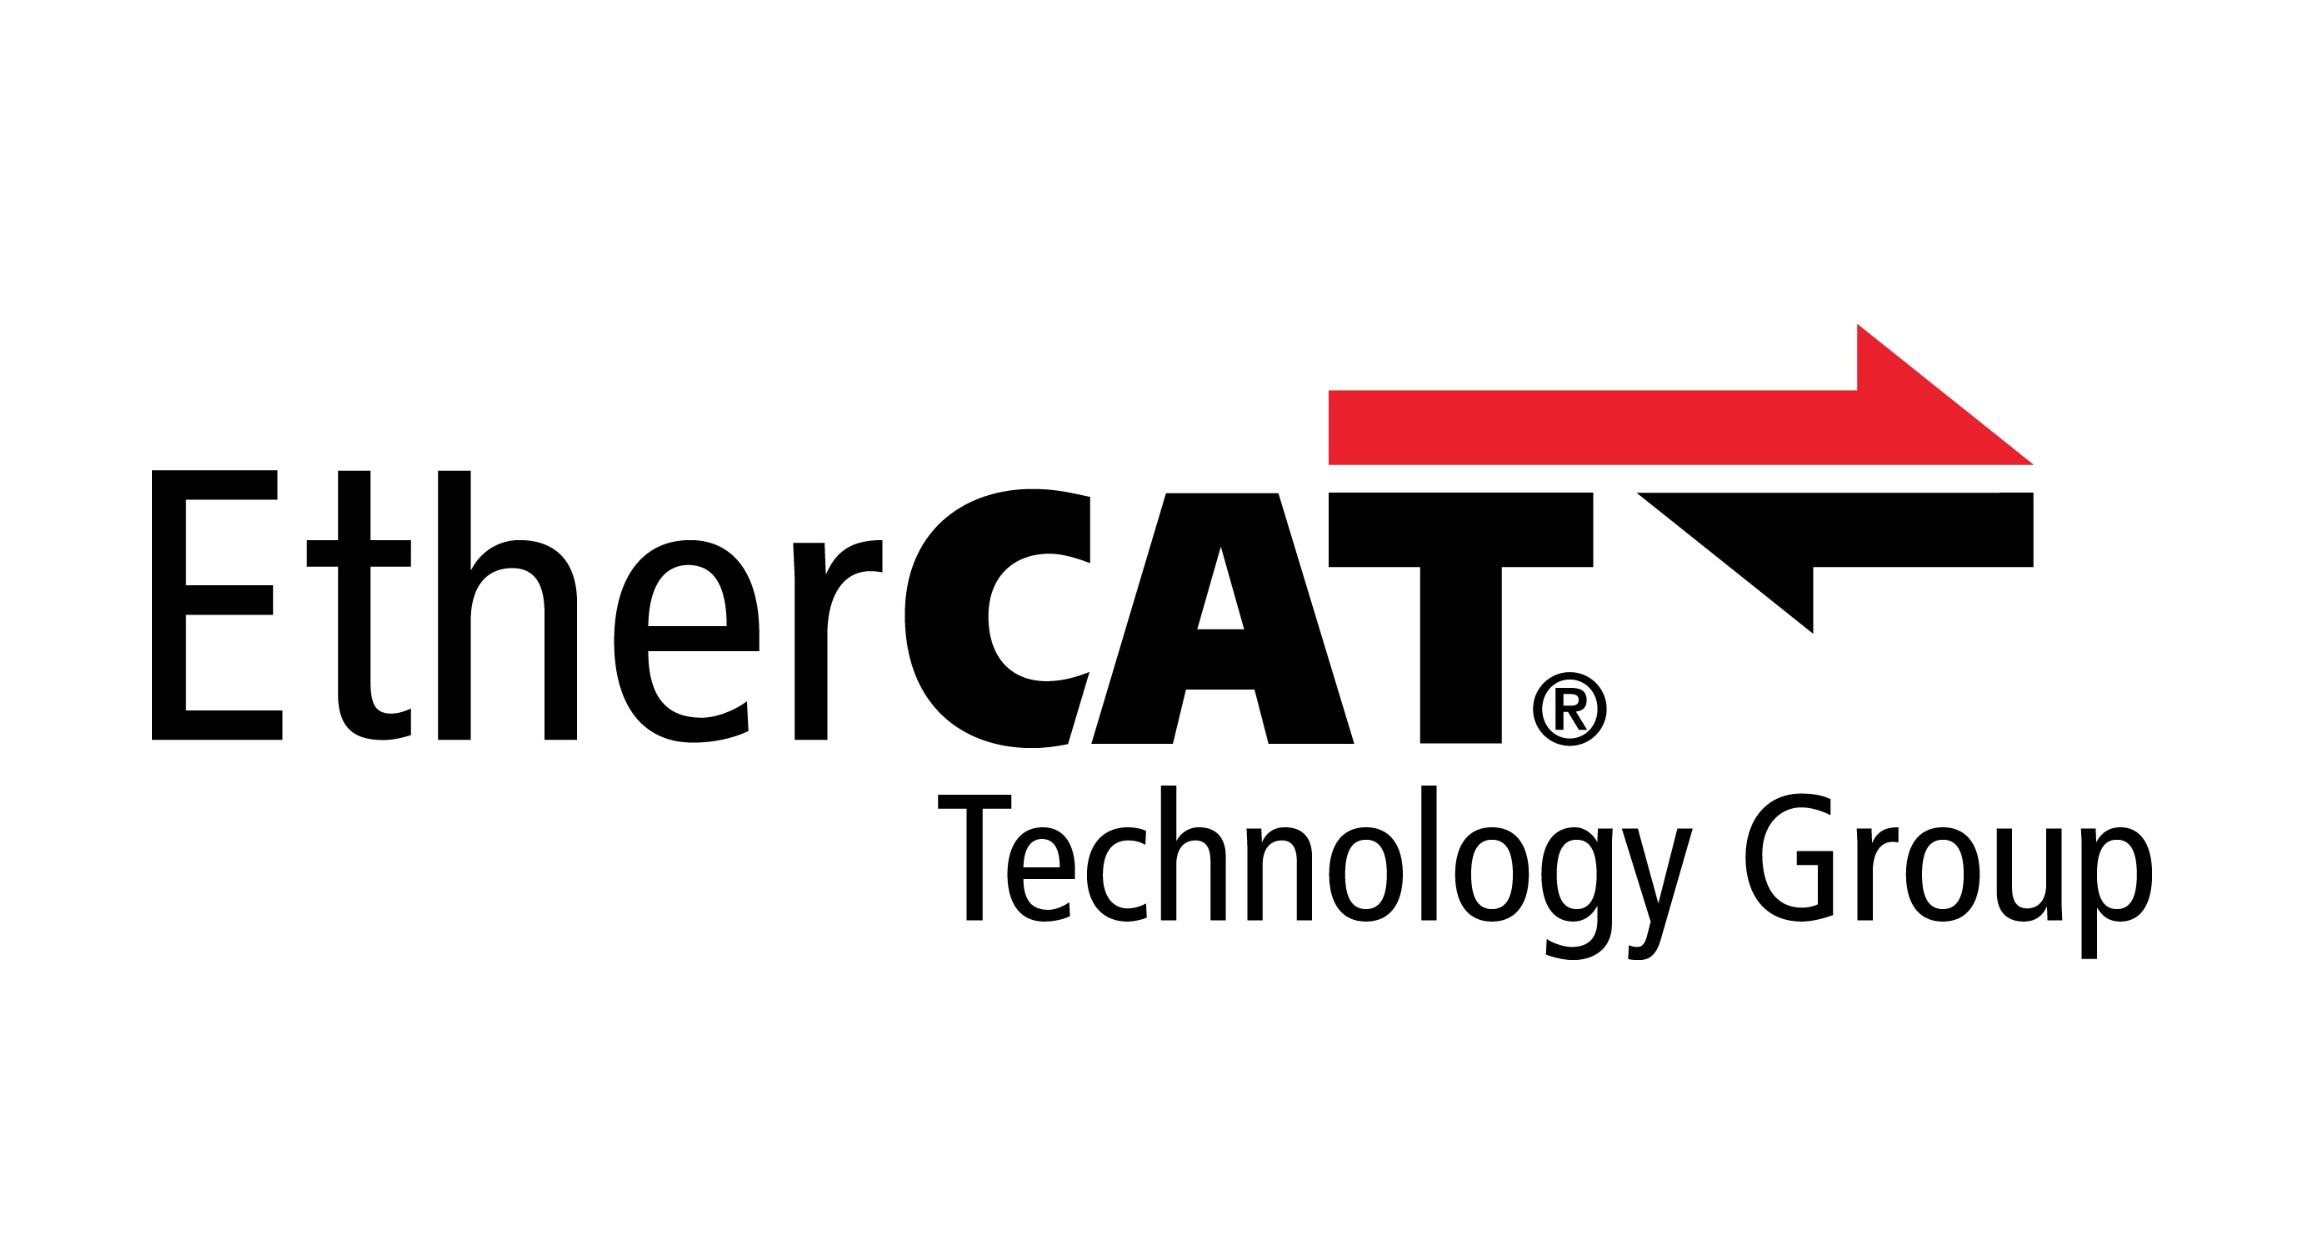 EtherCAT Technology Group日本オフィス